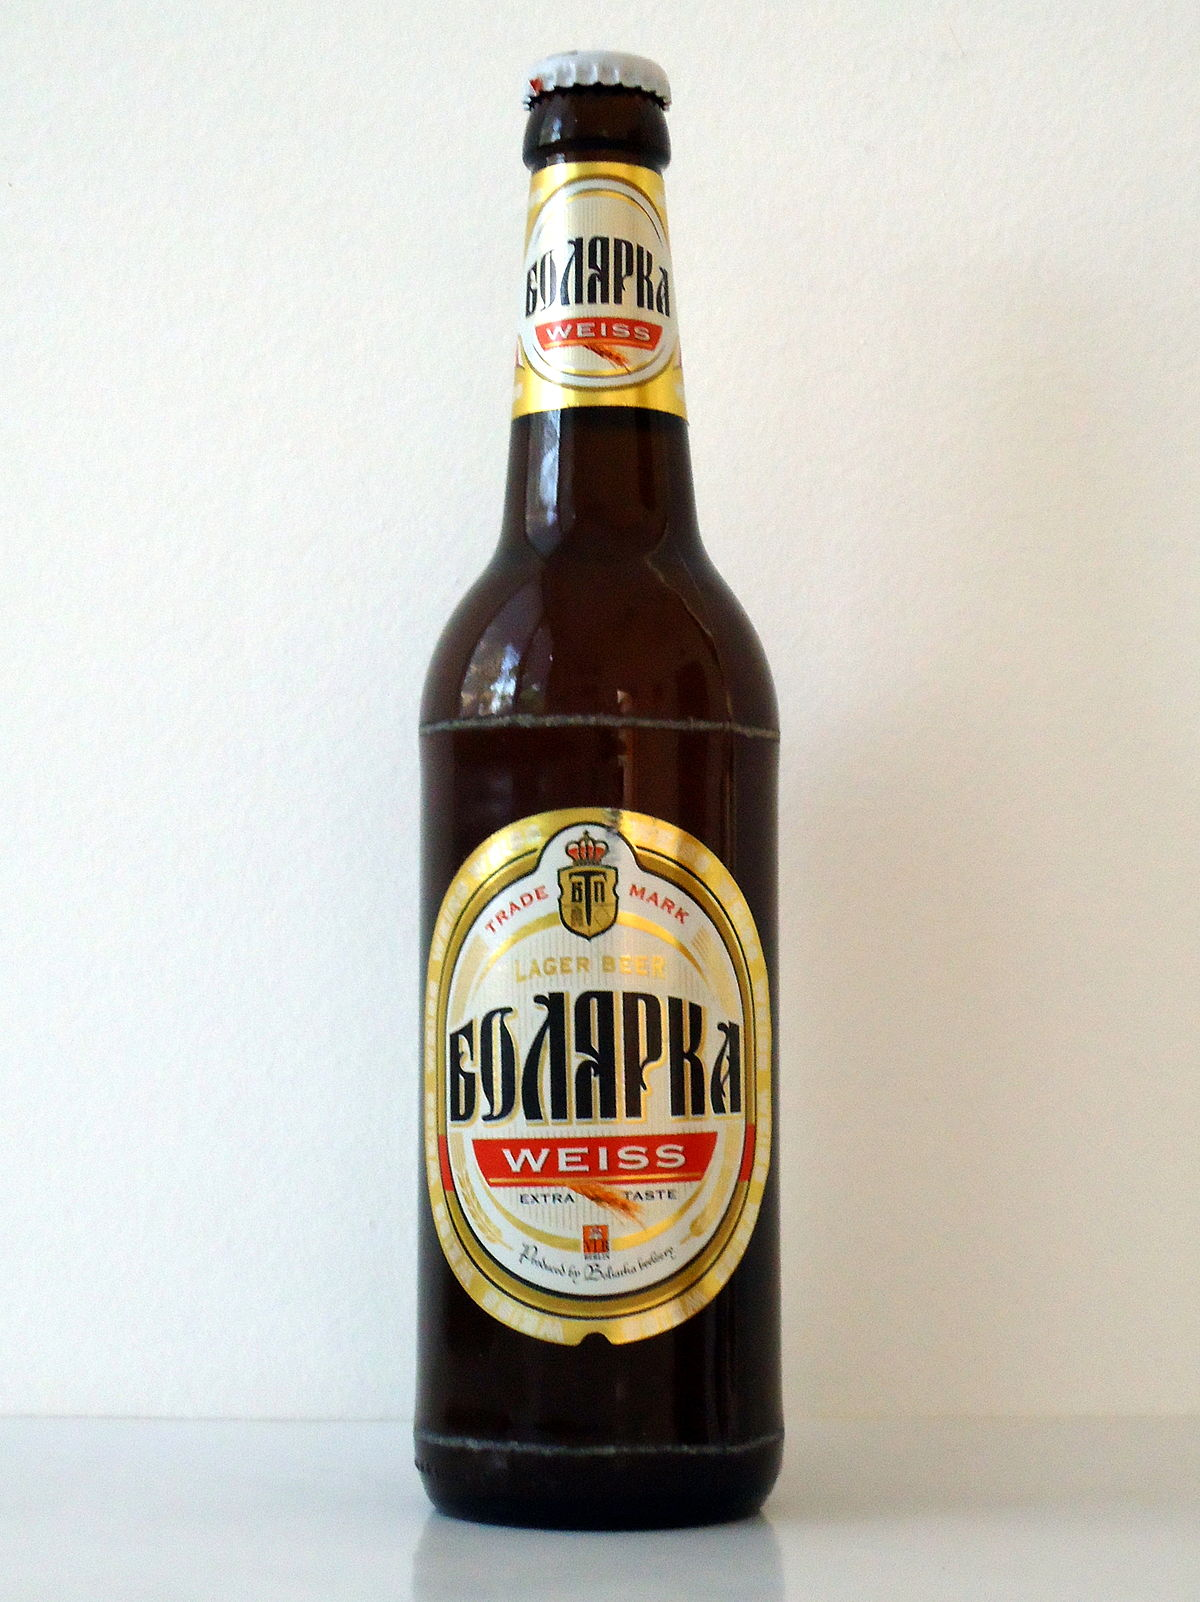 Can A Beer Drinking Alcoholic Die Overnight From Dts